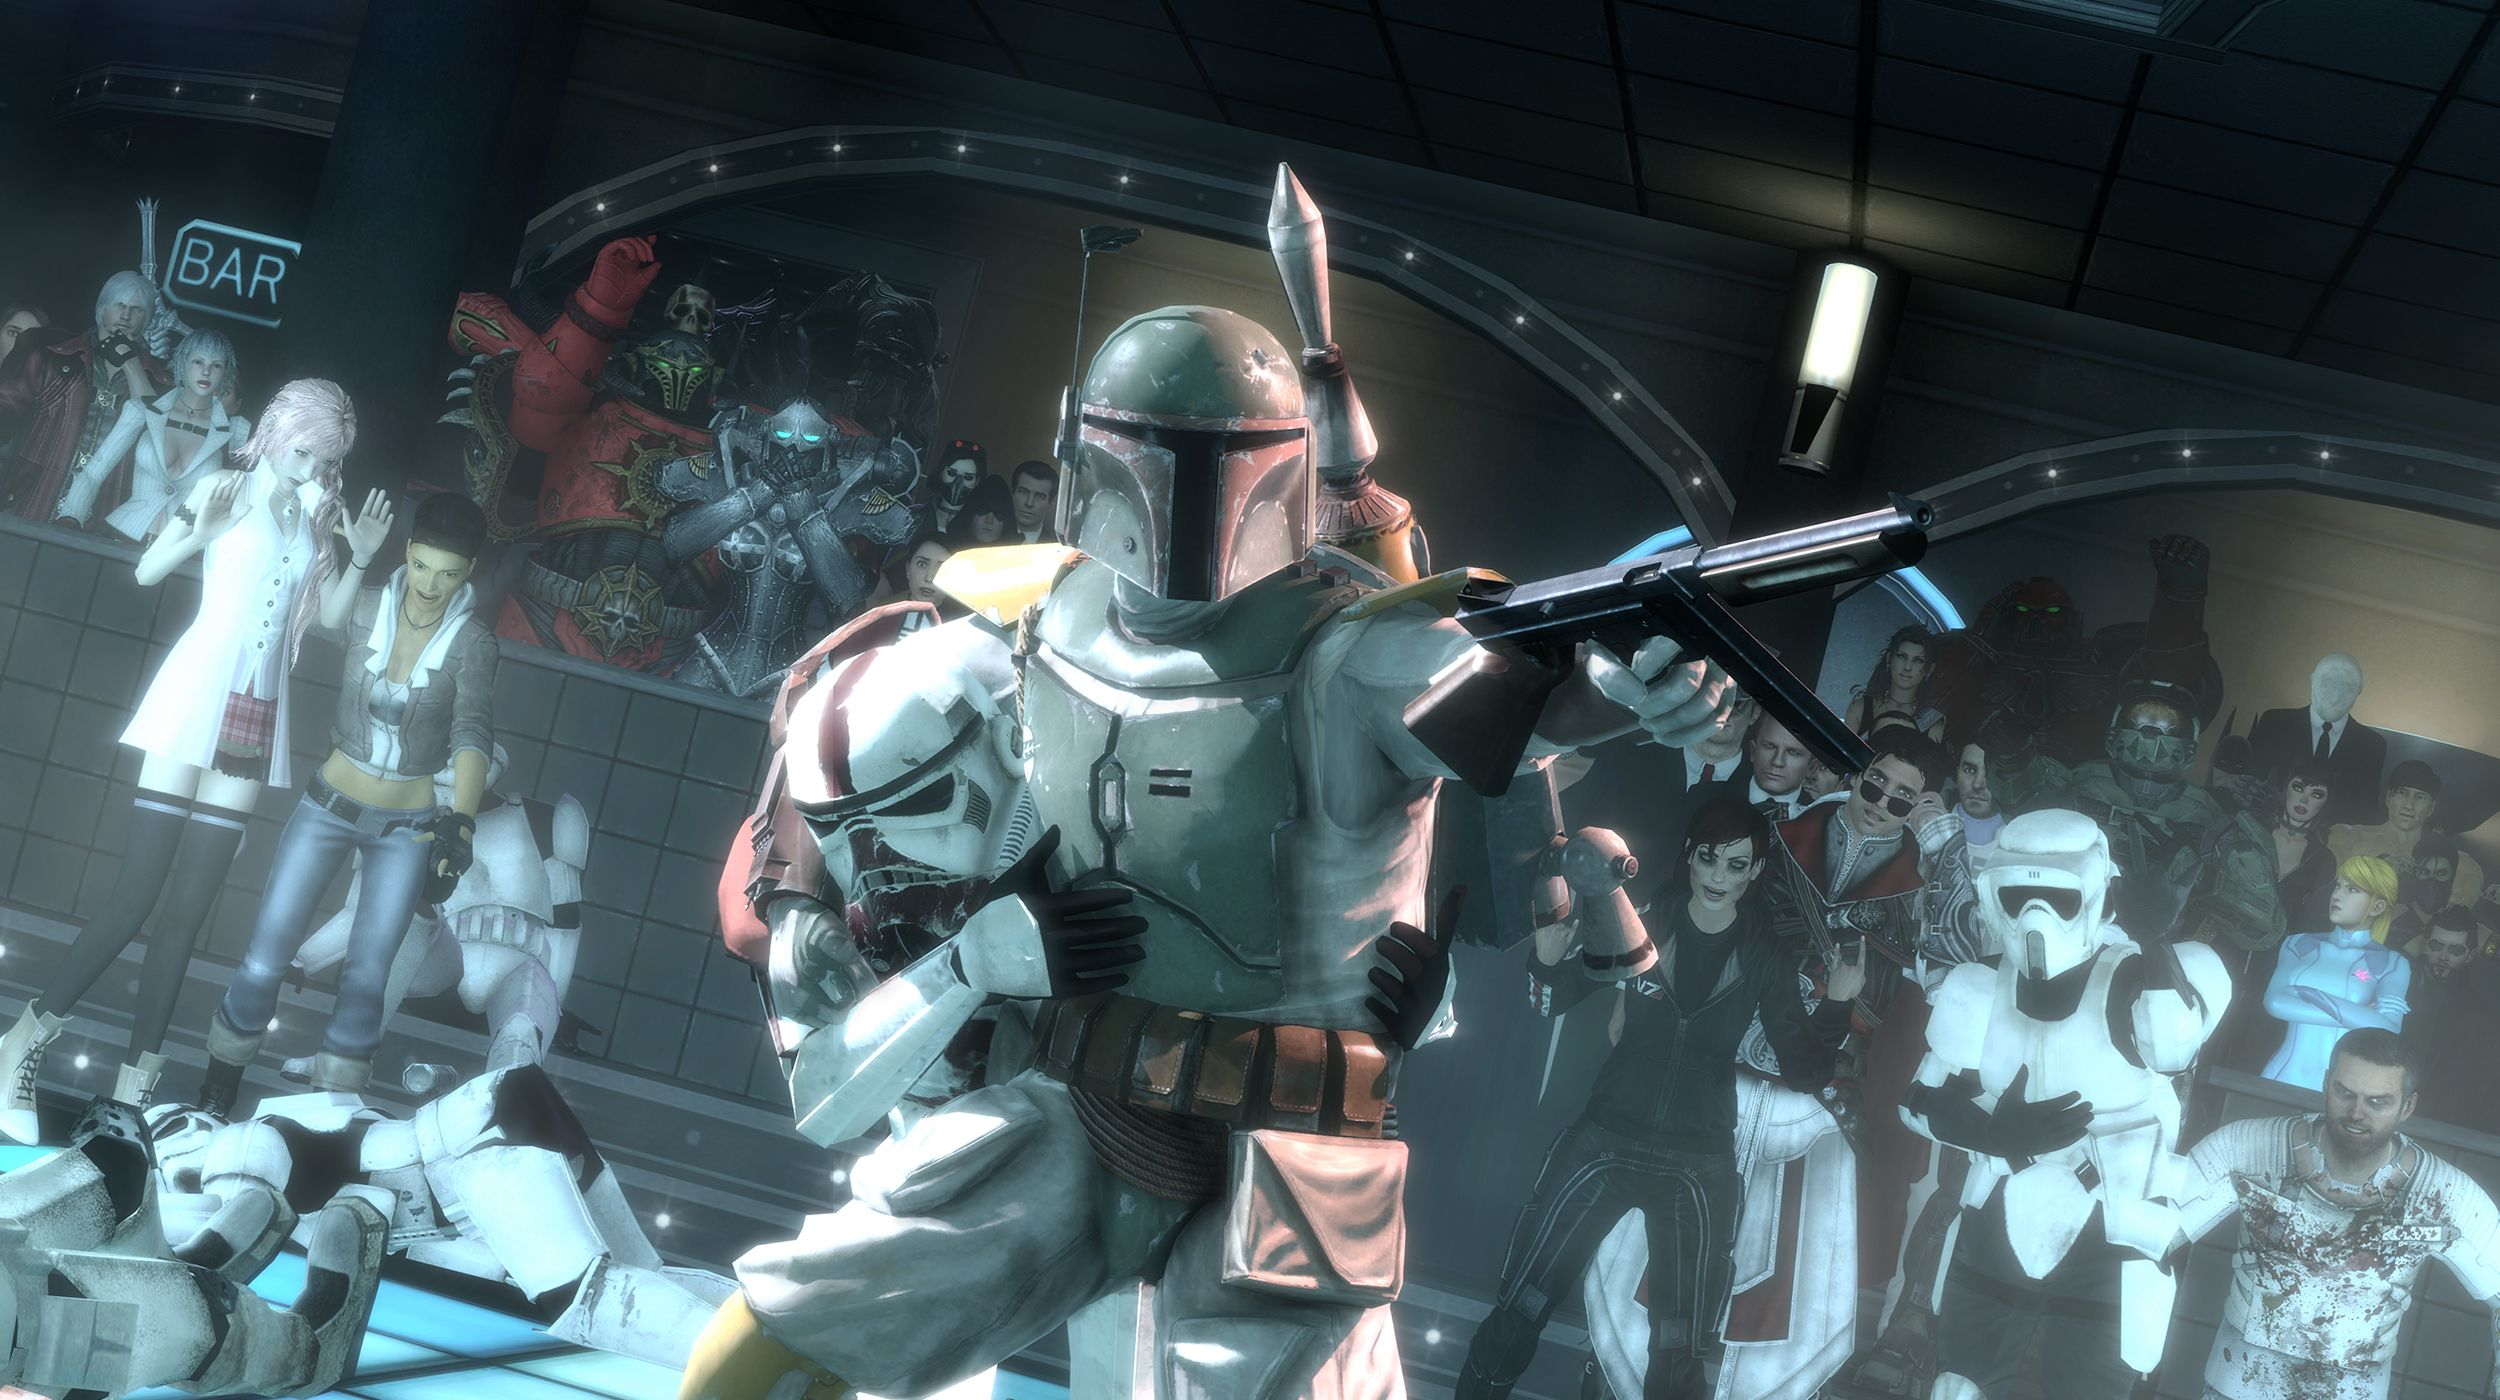 star-wars-boba-fett-wallpaper